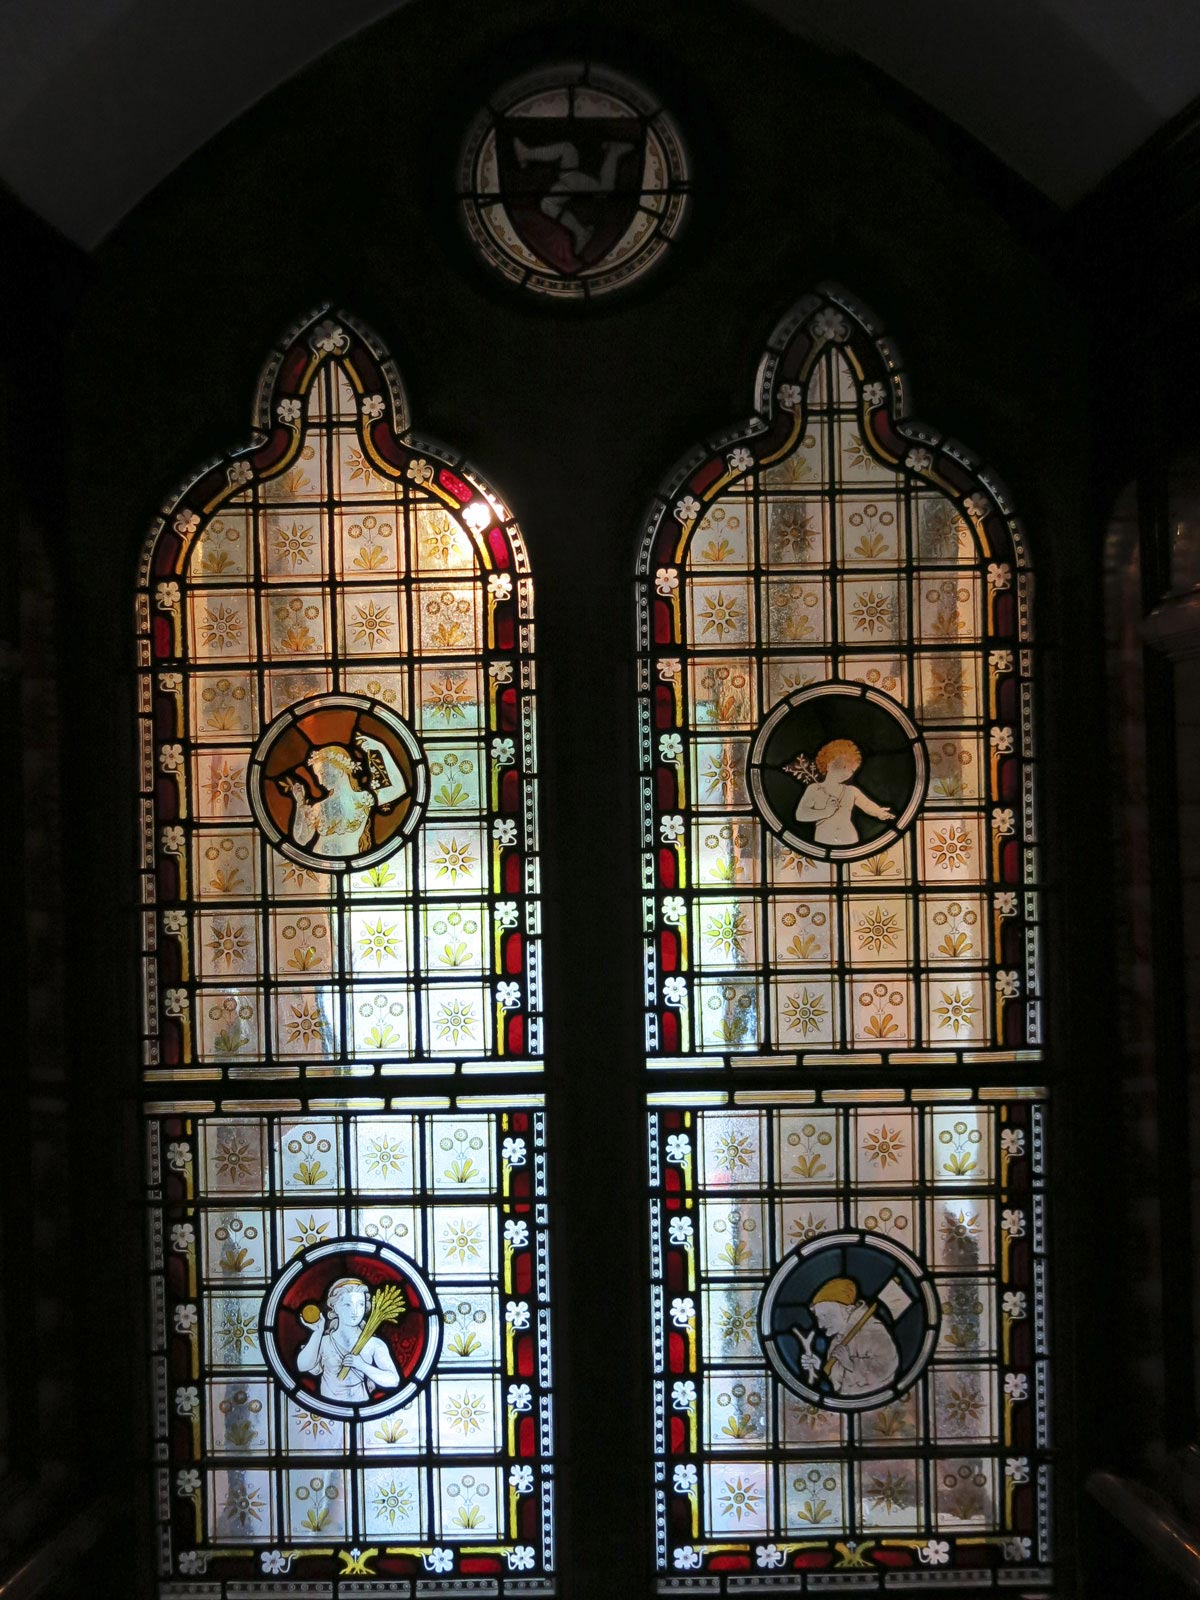 Tromode House, Stained glass window with daisy pattern